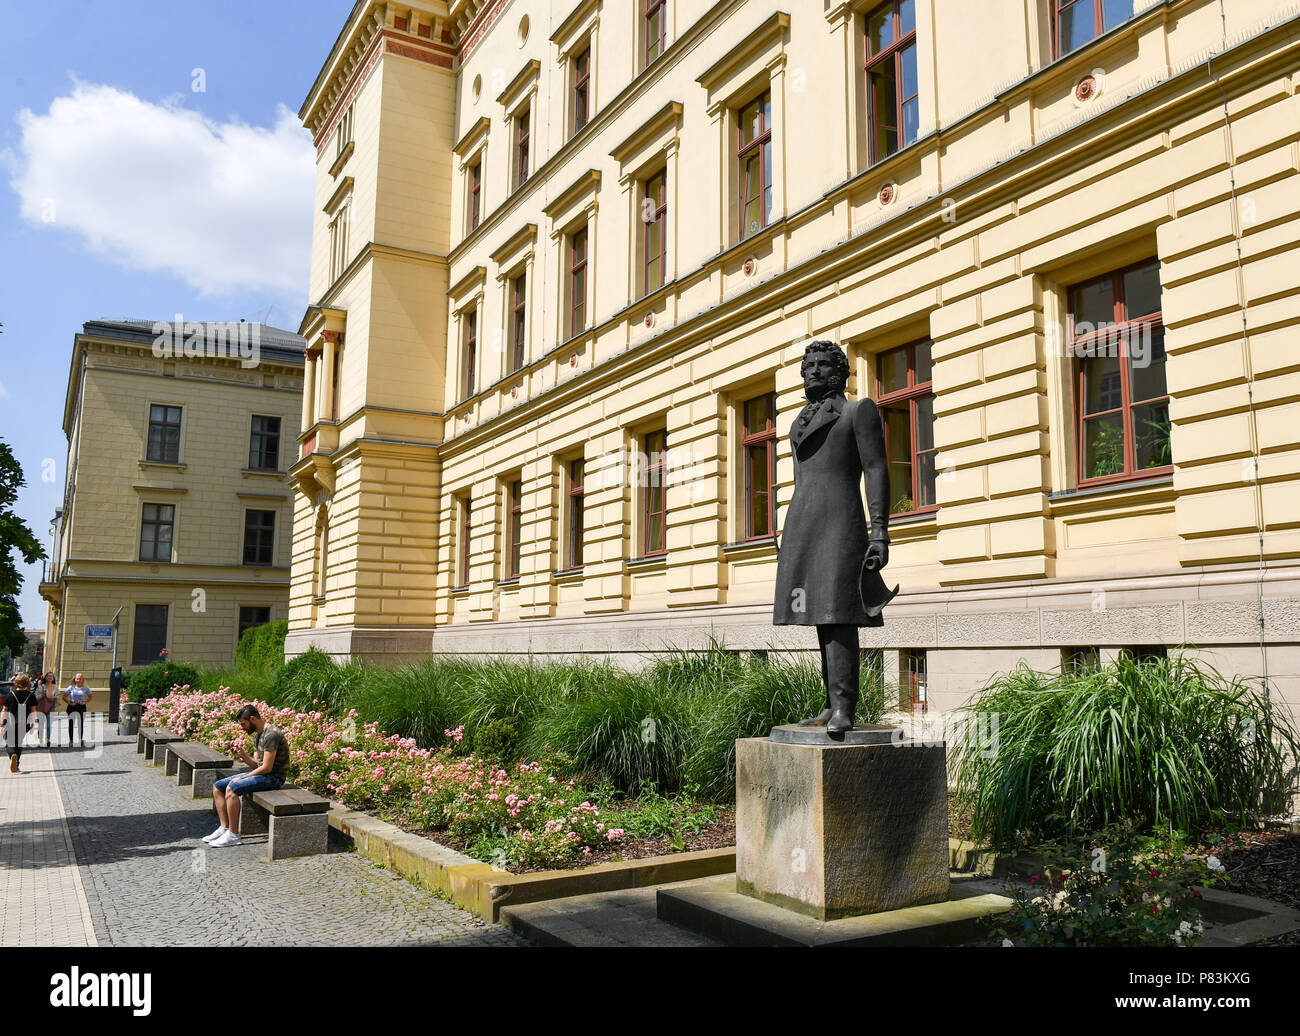 26 June 2018,Germany, Gera: The monument for Pushkin in the Schloss street next to the courthouse in the city centre. Alexander Sergeyevich Pushkin is known as Russian national poet and founder of the modern Russian literature. Photo: Jens Kalaene/dpa-Zentralbild/dpa - Stock Image